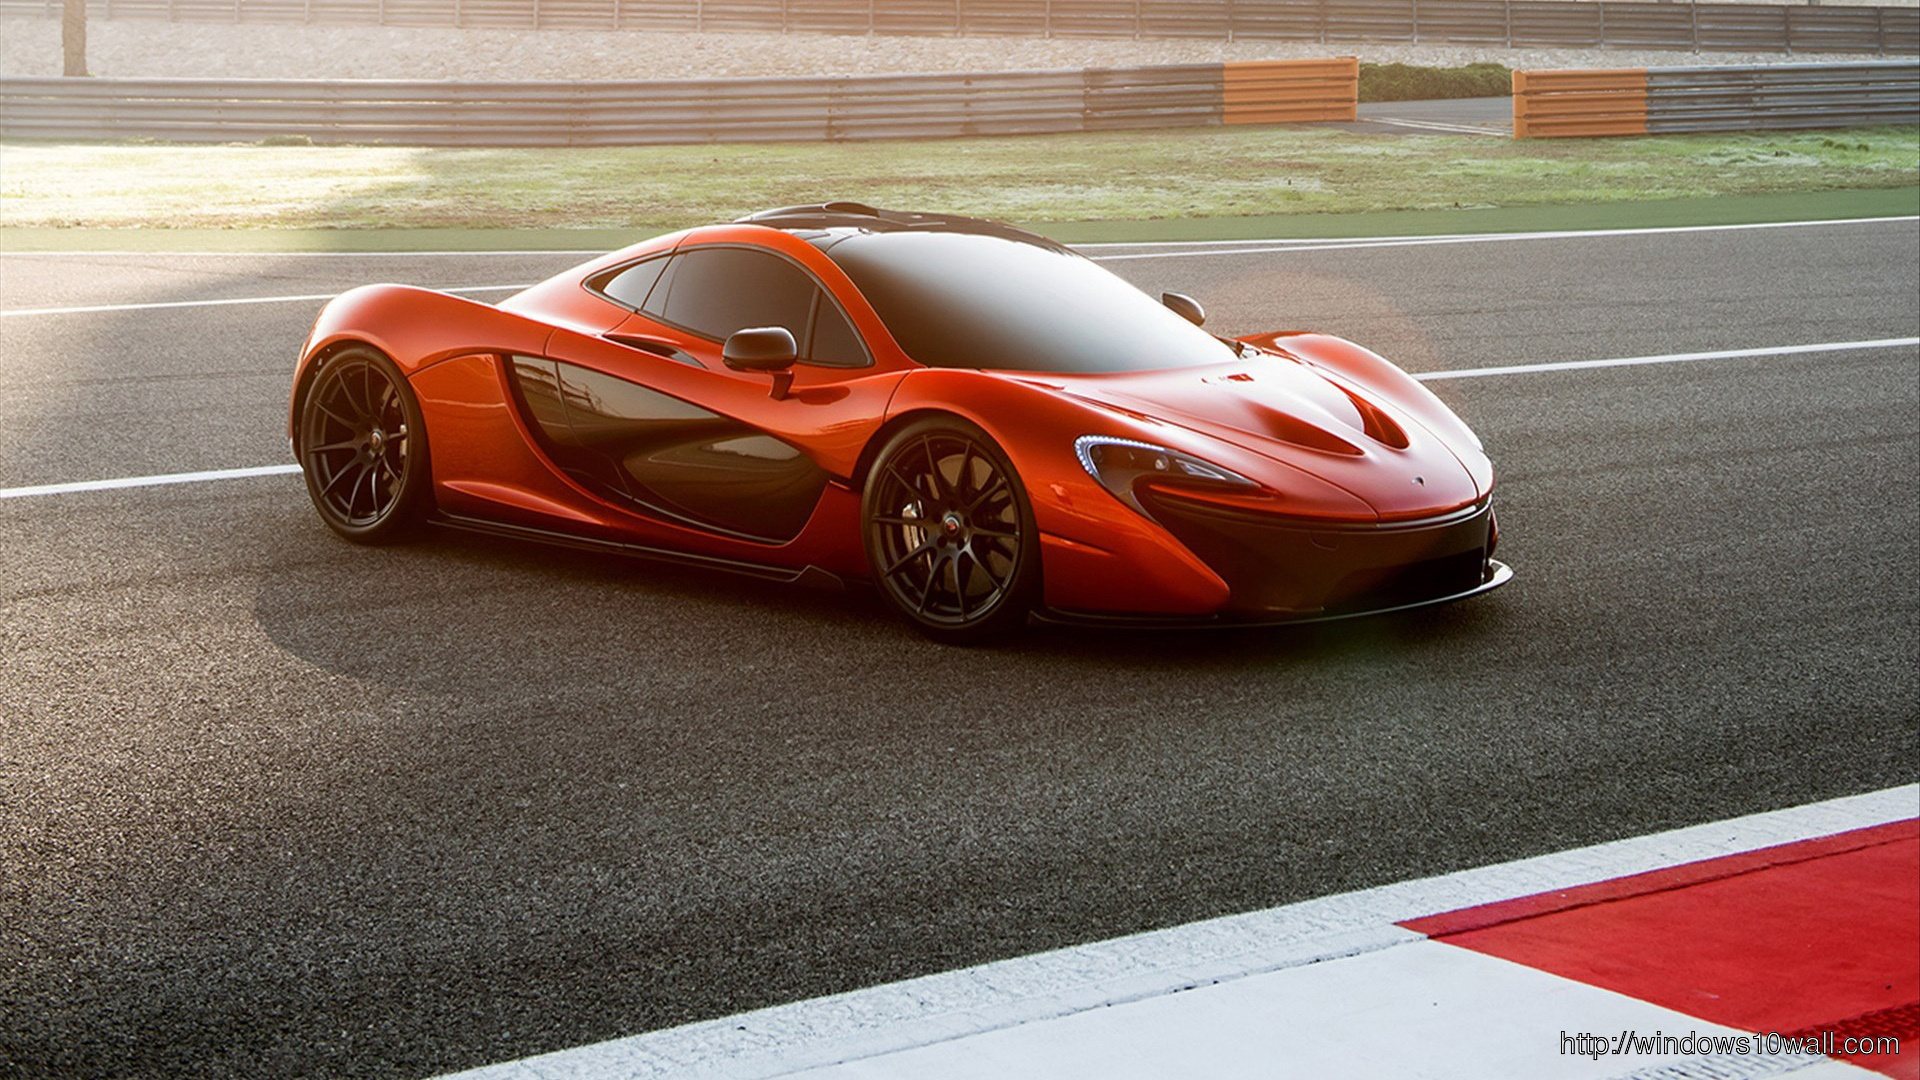 Mclaren p1 2014 HD Background wallpaper